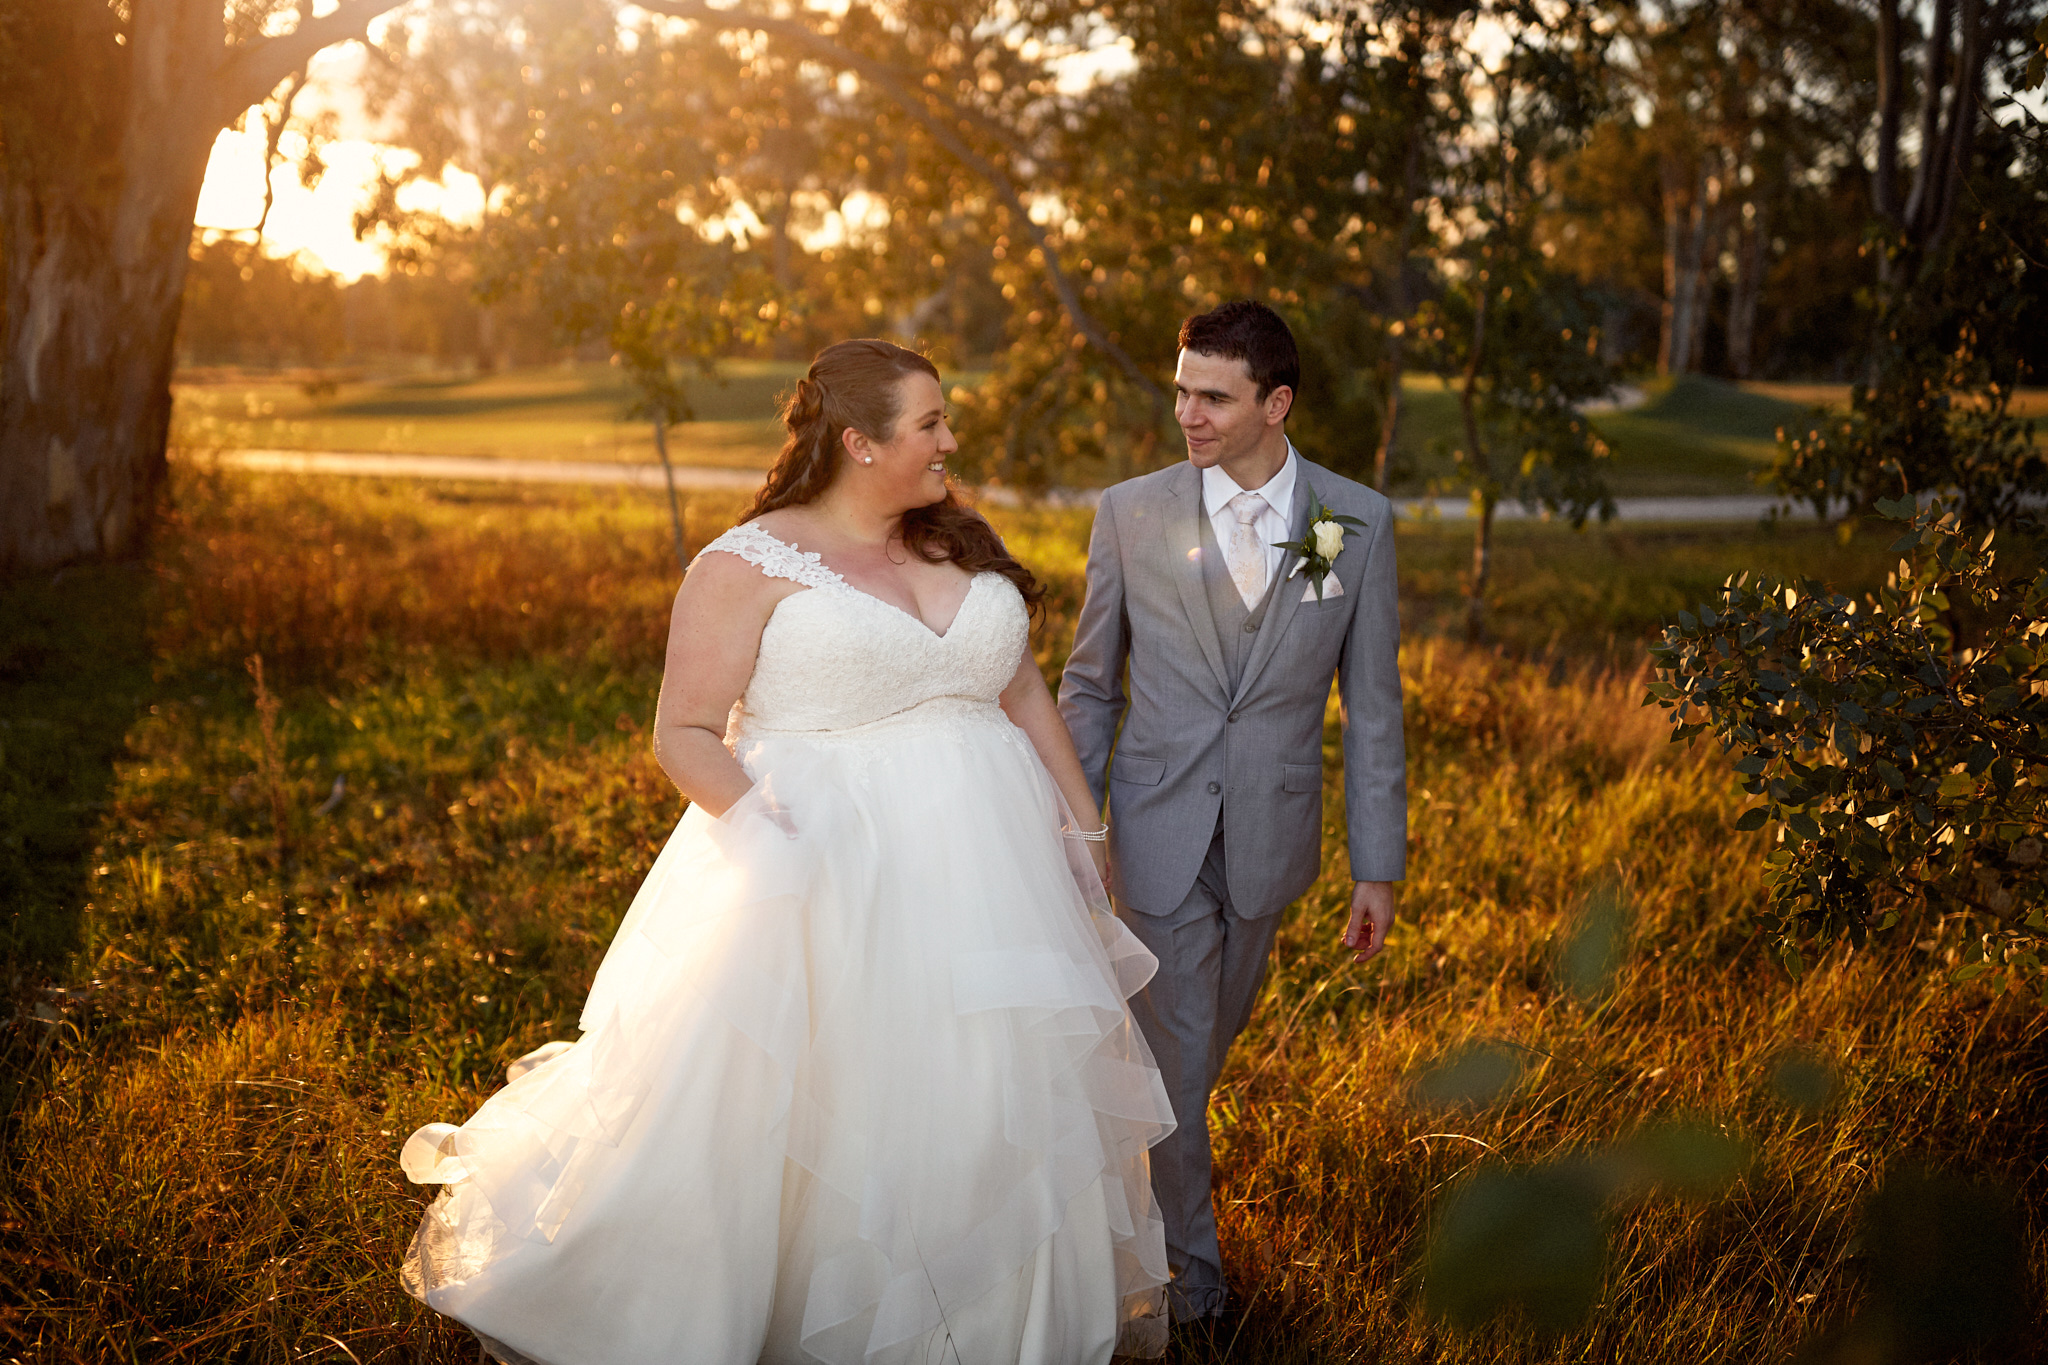 Bride and groom walking through grass at sunset at their lakeside Camden golf club wedding